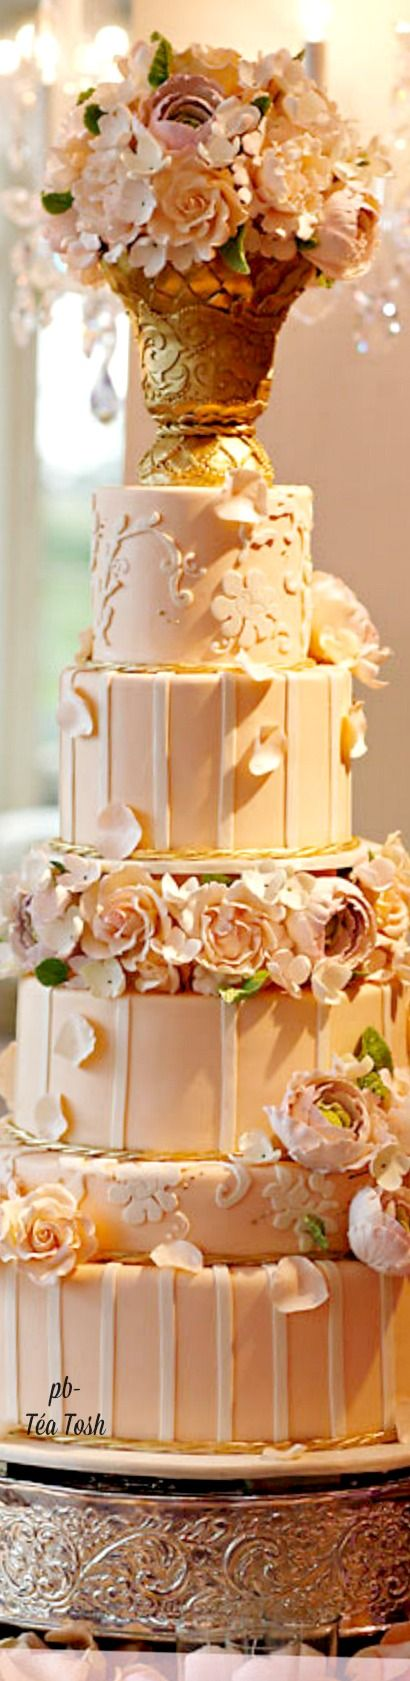 ❇Téa Tosh❇via:   https://www.pinkcakebox.com/category/pastry-images/wedding-cakes/page/4/